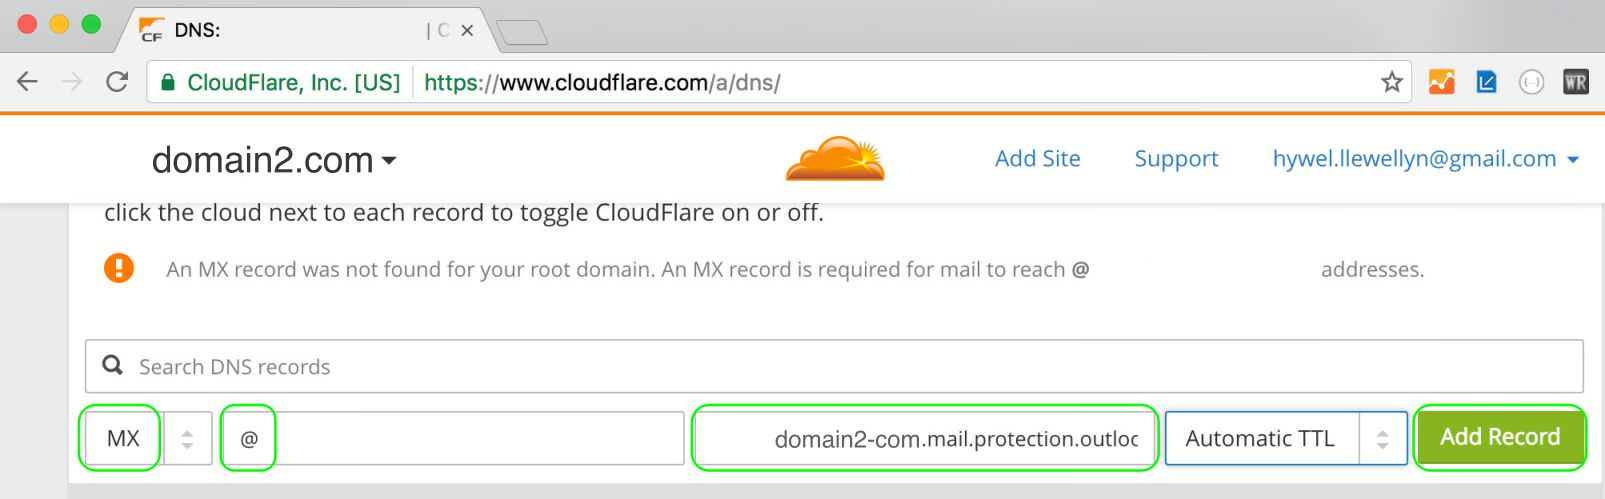 4.4 Click Add Record to add the MX record to CloudFlare